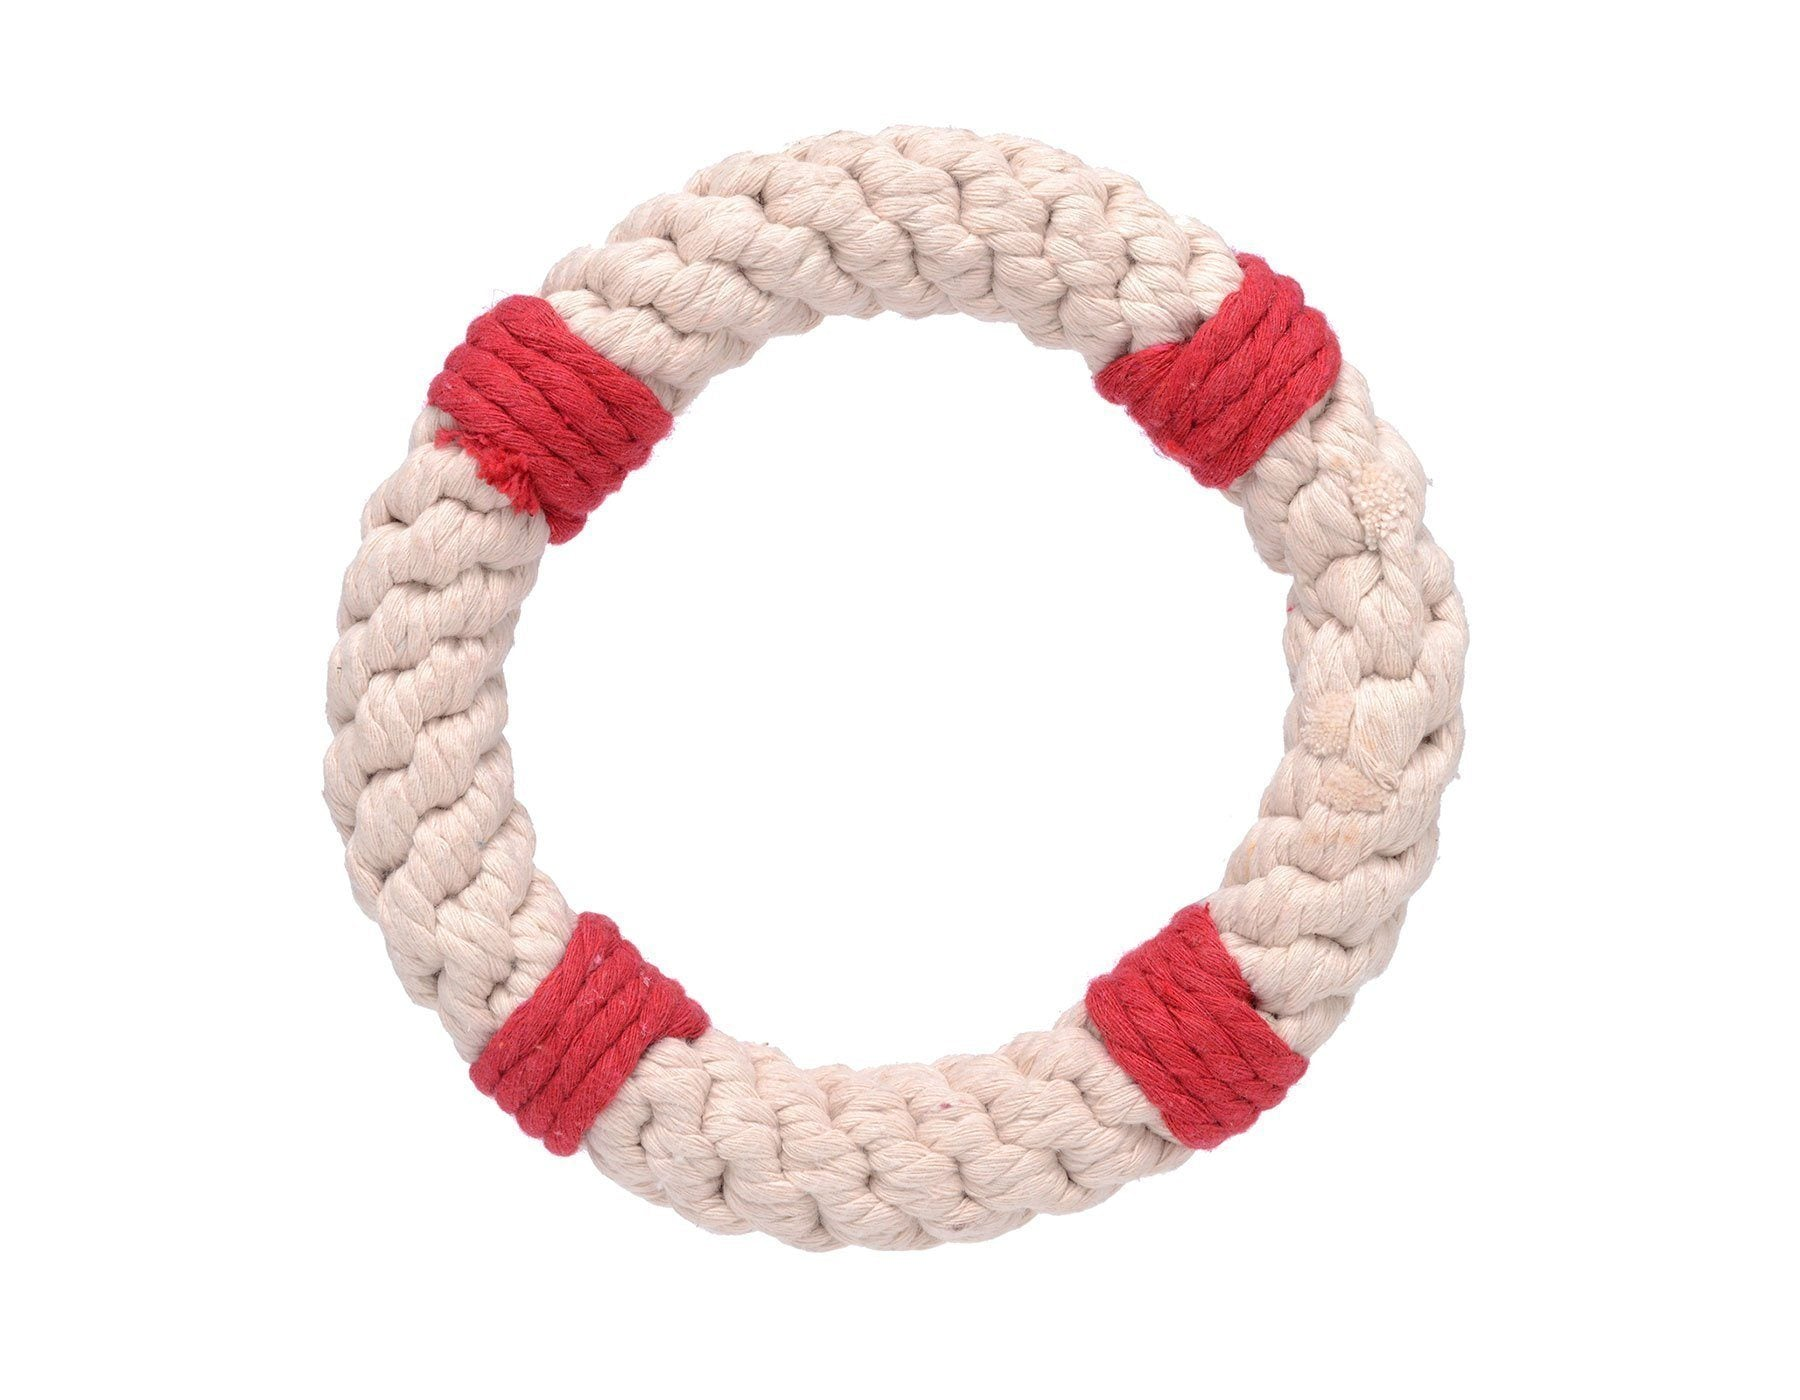 Jax & Bones, Lifesaver Rope Dog Toy, - Placewares